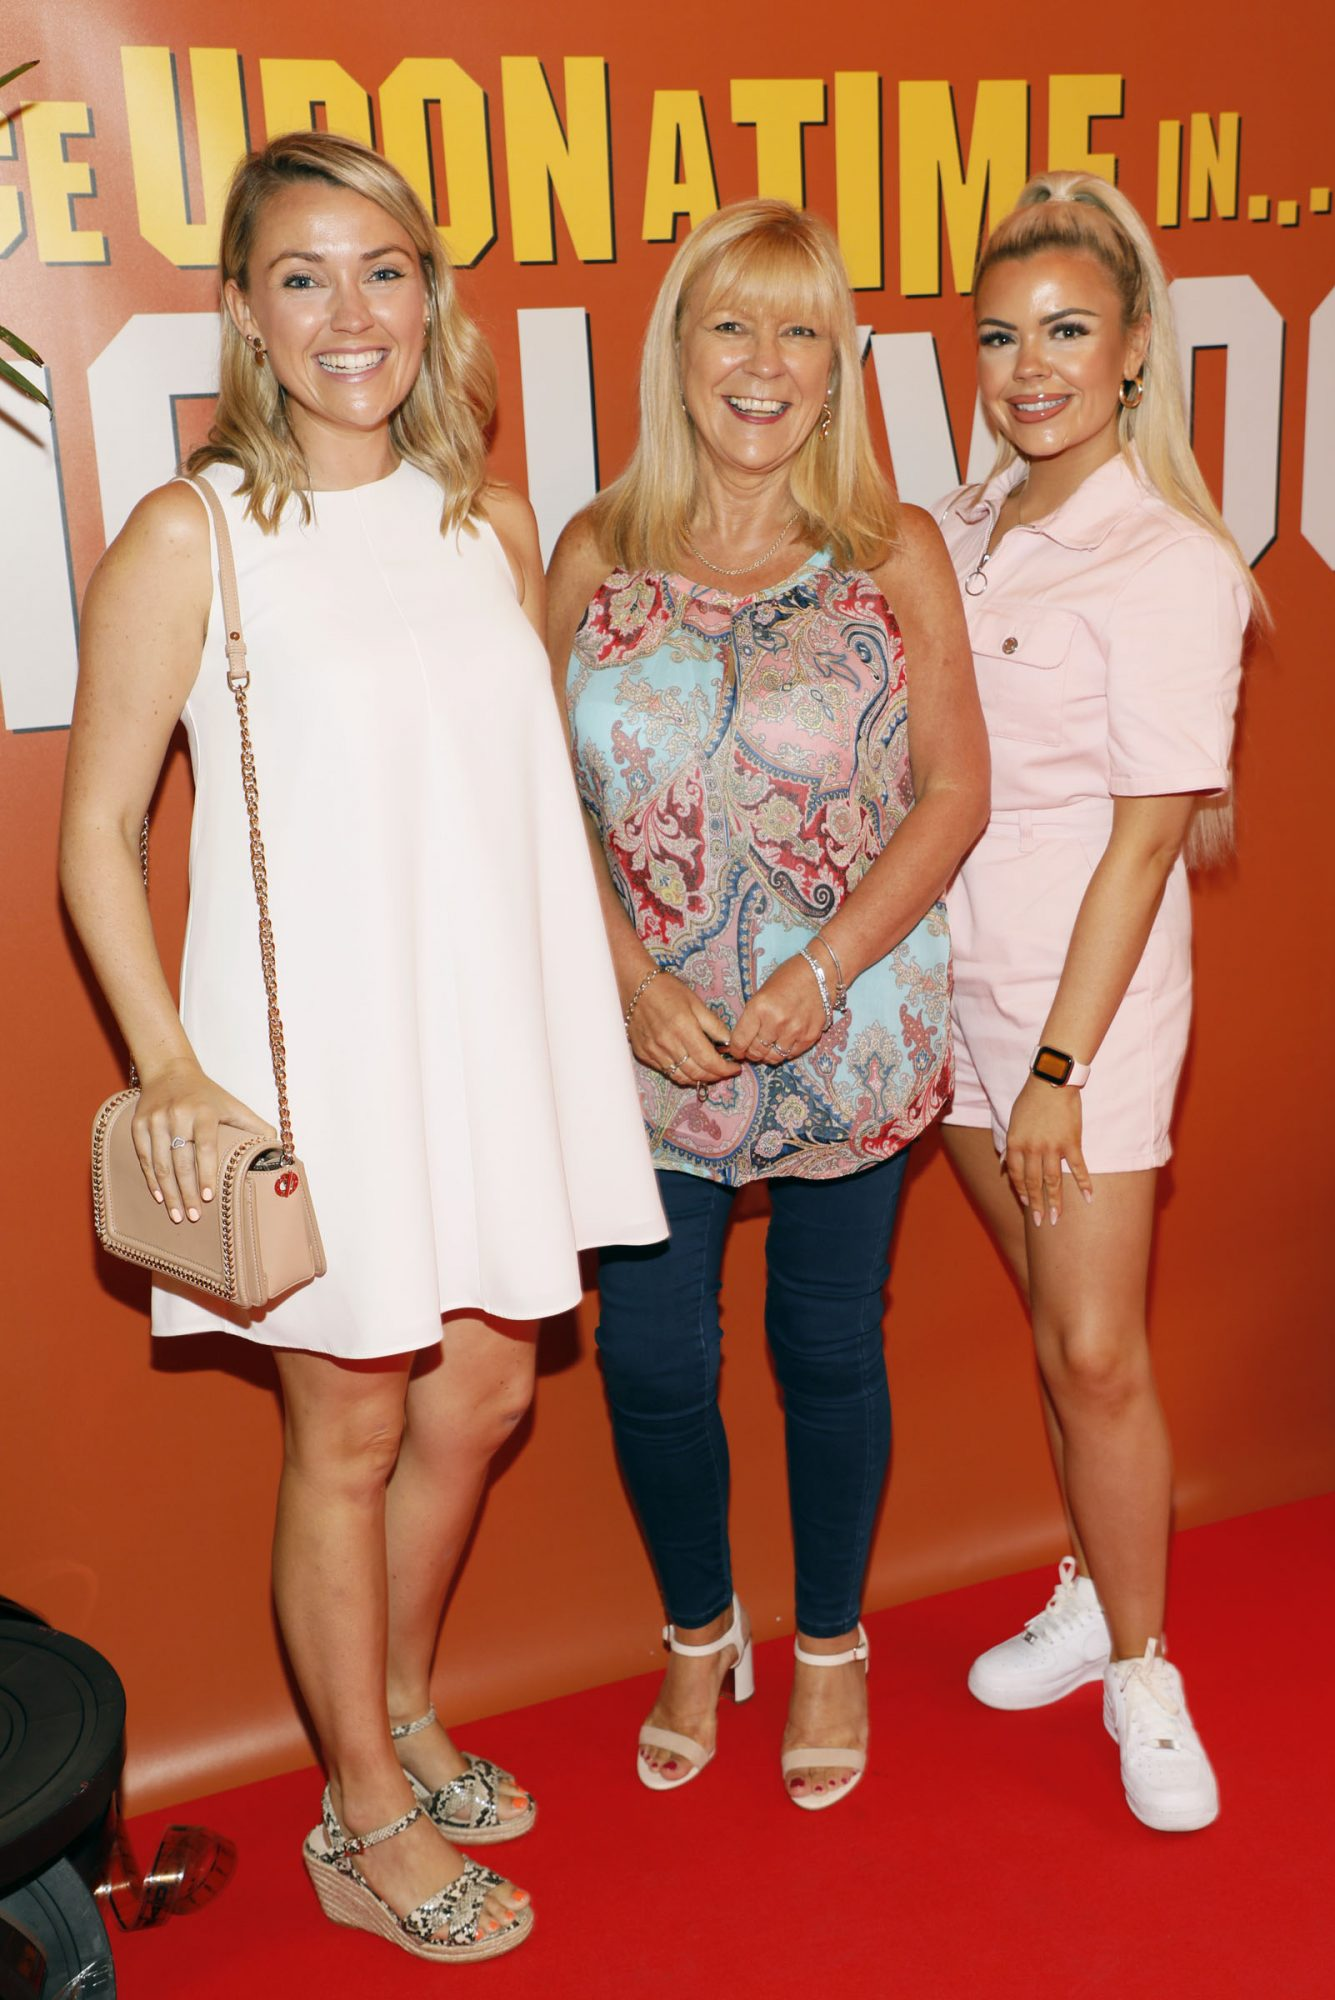 Emma, Noreen and Leah Ivie at the Multimedia Screening of Once Upon A Time In Hollywood at the Stella Theatre, Rathmines, in cinema August 14th. Photo: Kieran Harnett